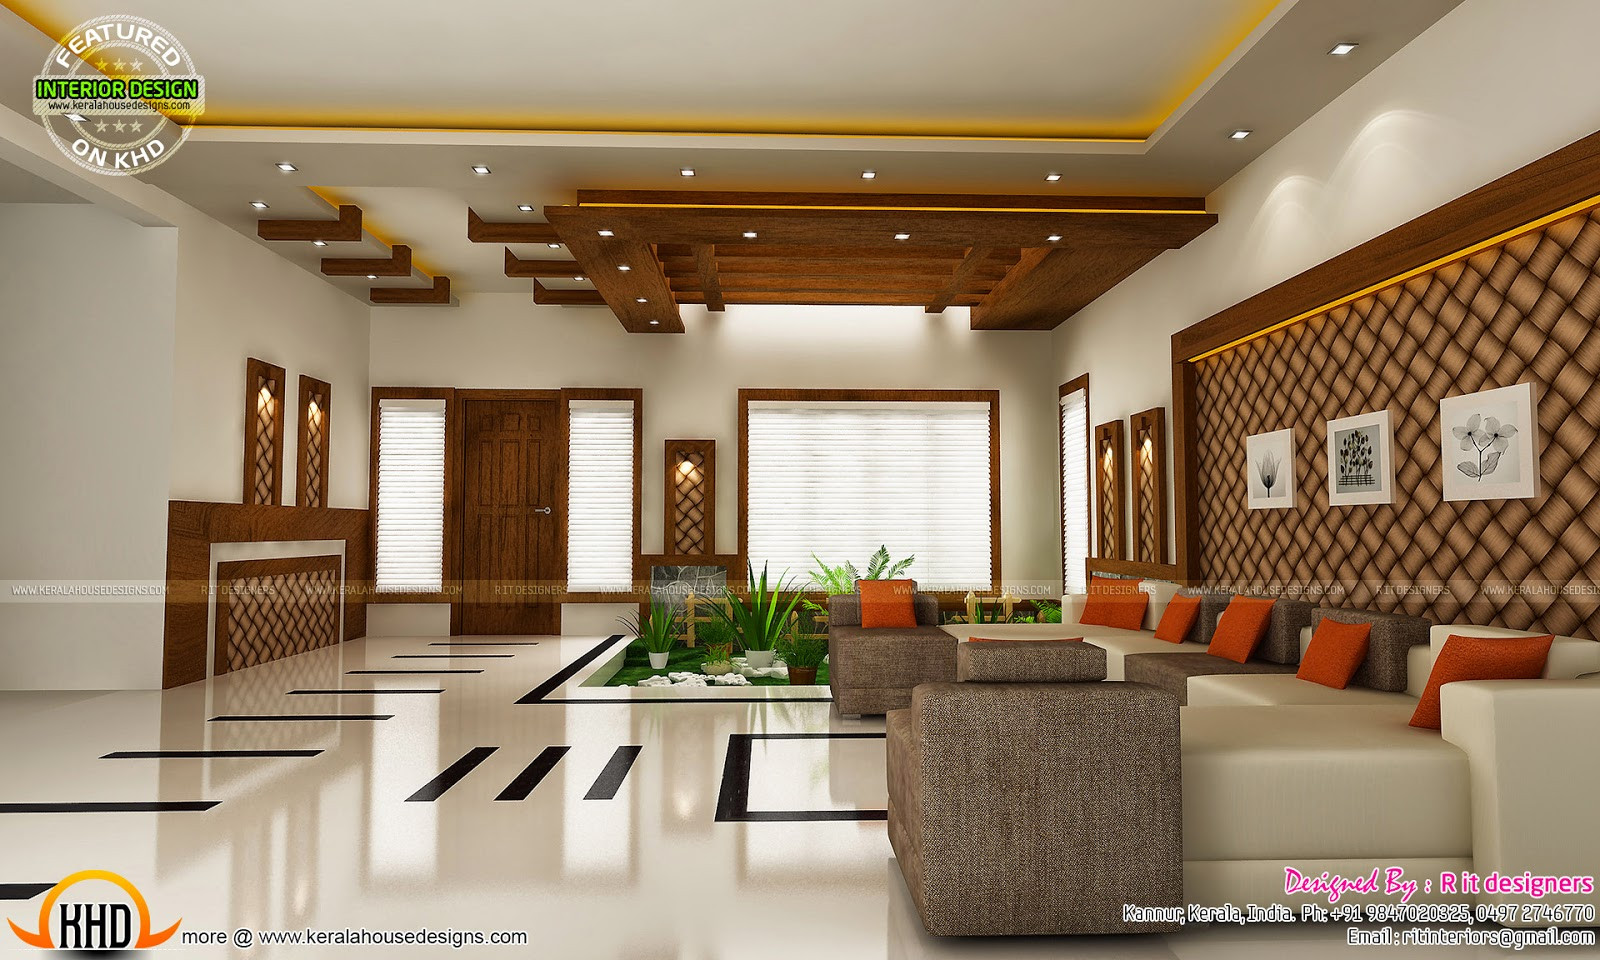 Modern and unique dining kitchen interior kerala home design and floor plans - Home interiors living room ...